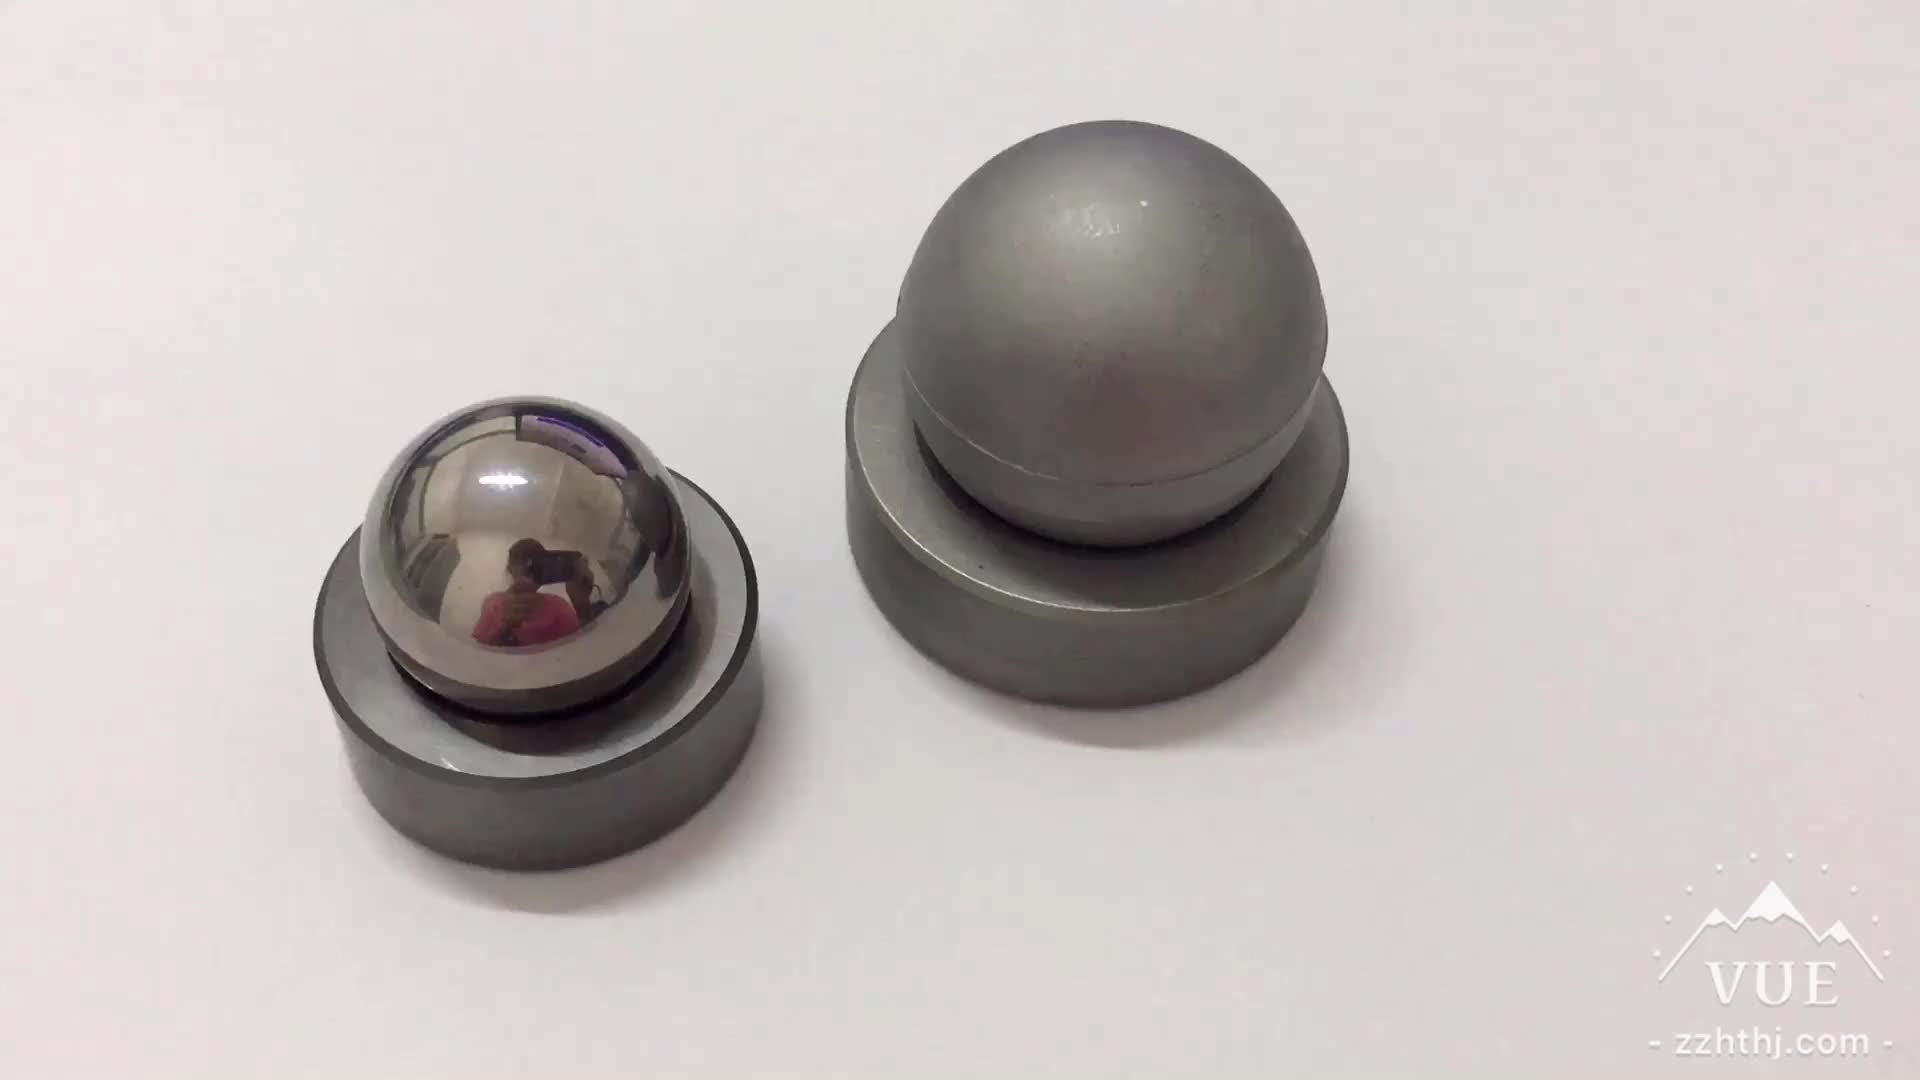 Grinding tungsten carbidE api 11ax tc ball and seat